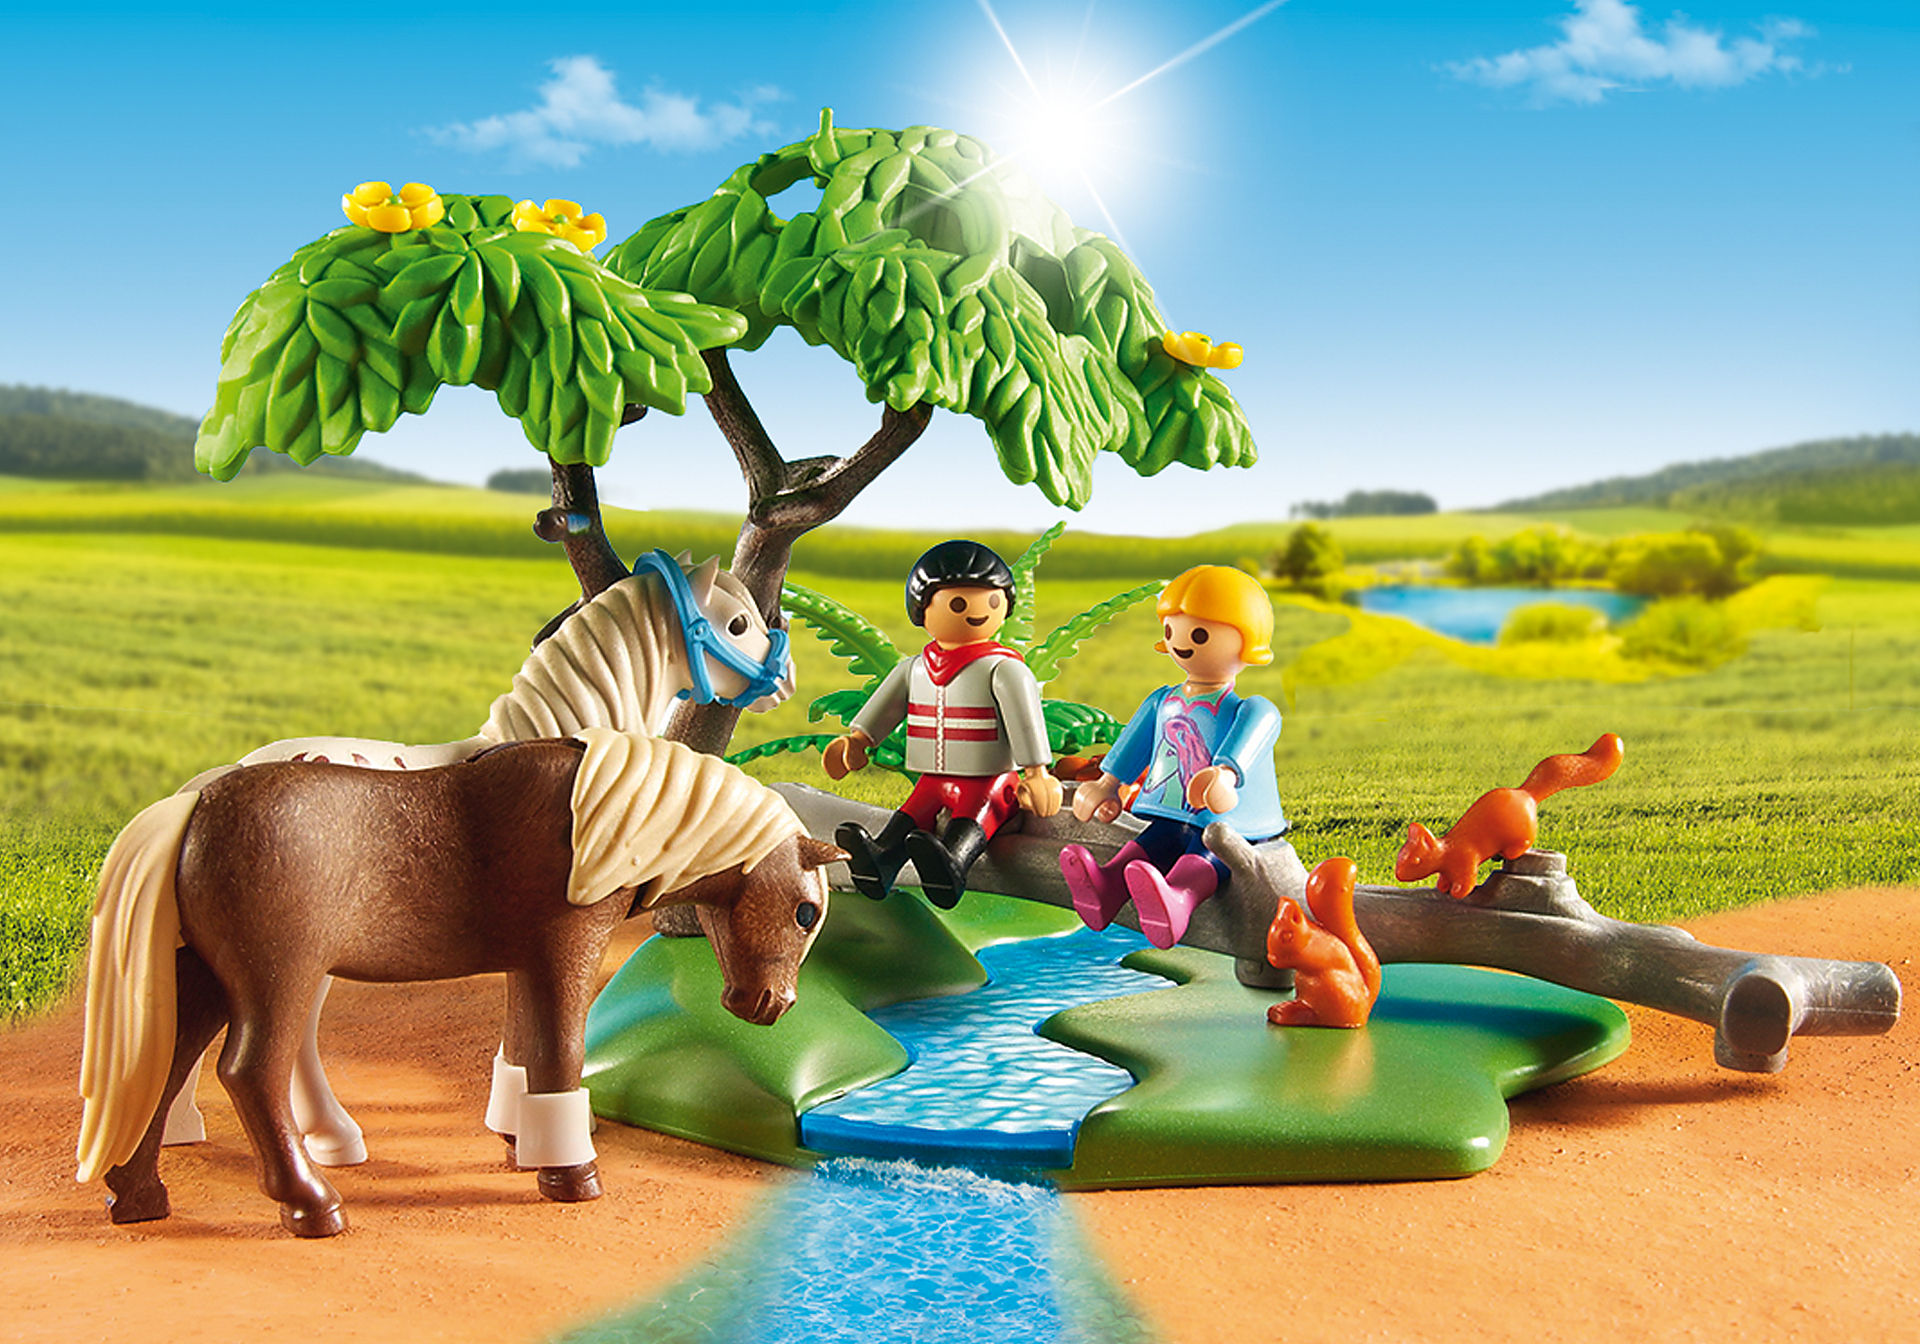 http://media.playmobil.com/i/playmobil/6947_product_extra1/Country Horseback Ride